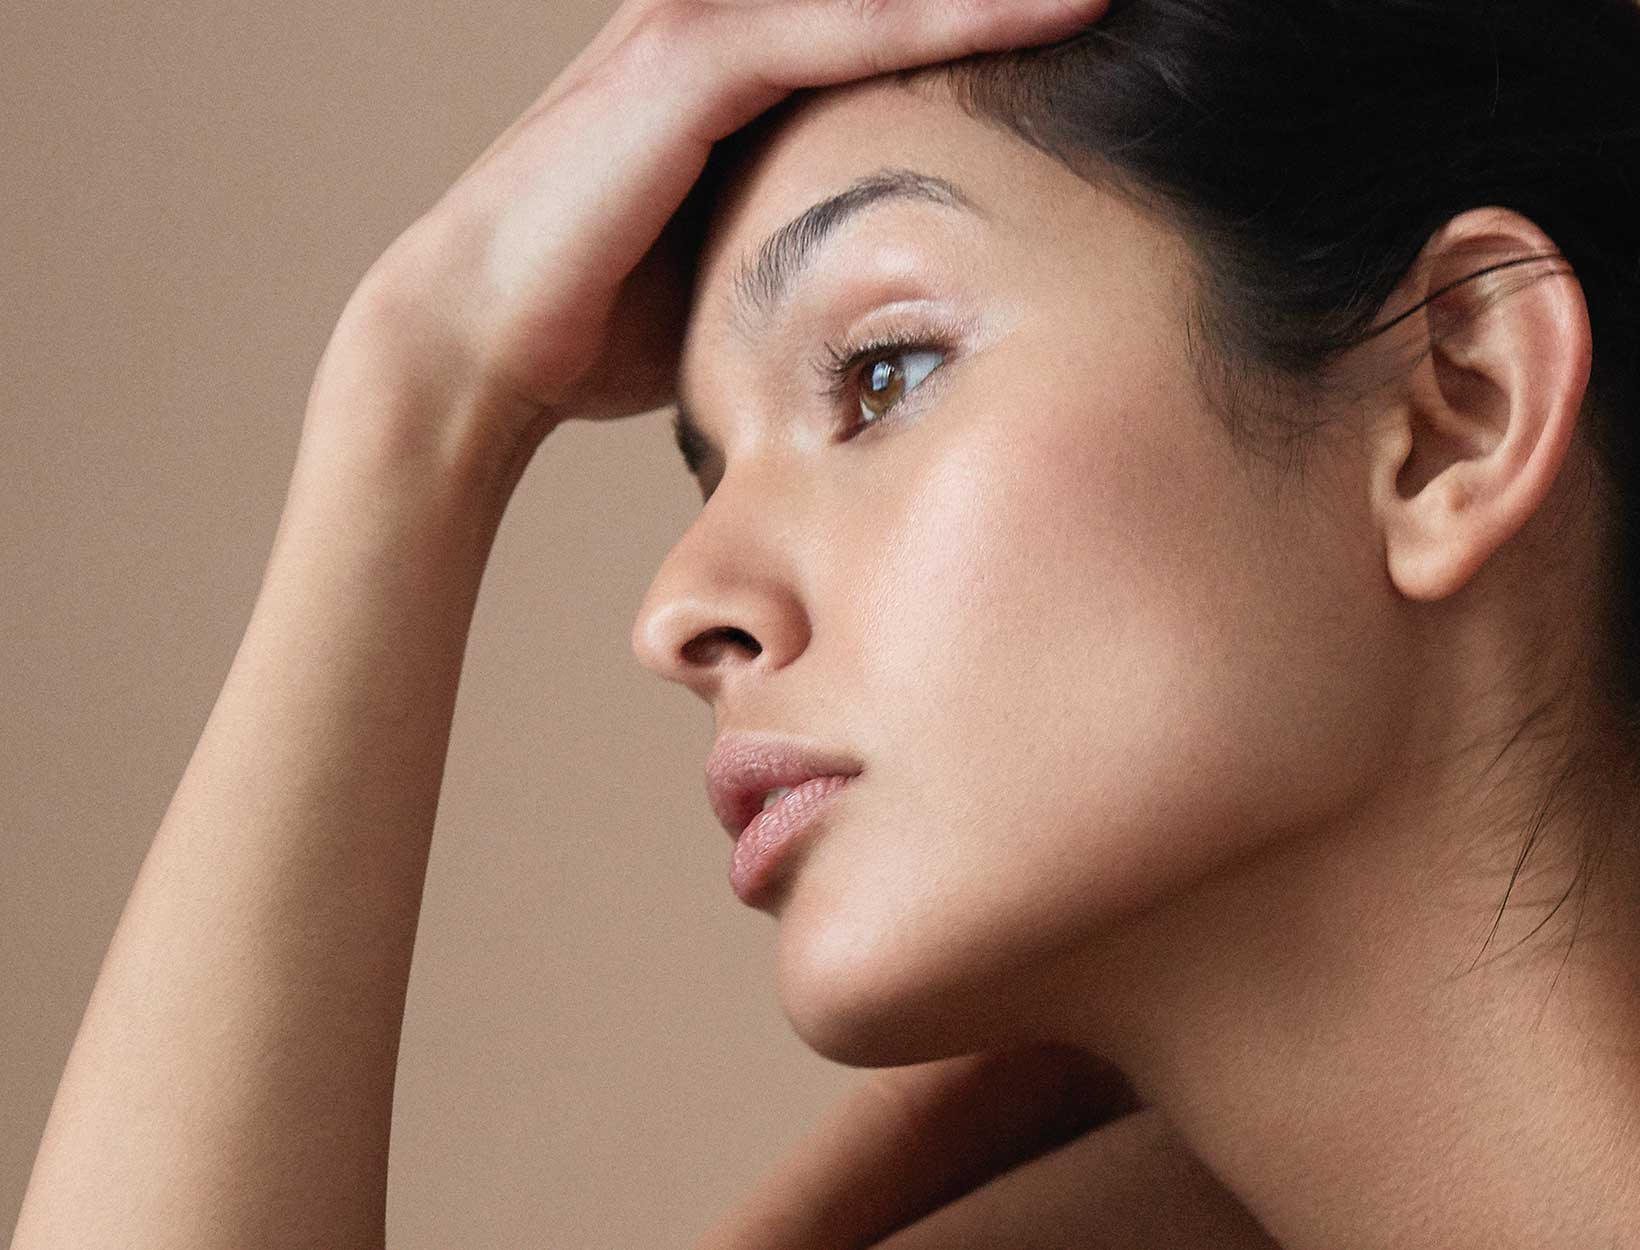 side view of woman's face